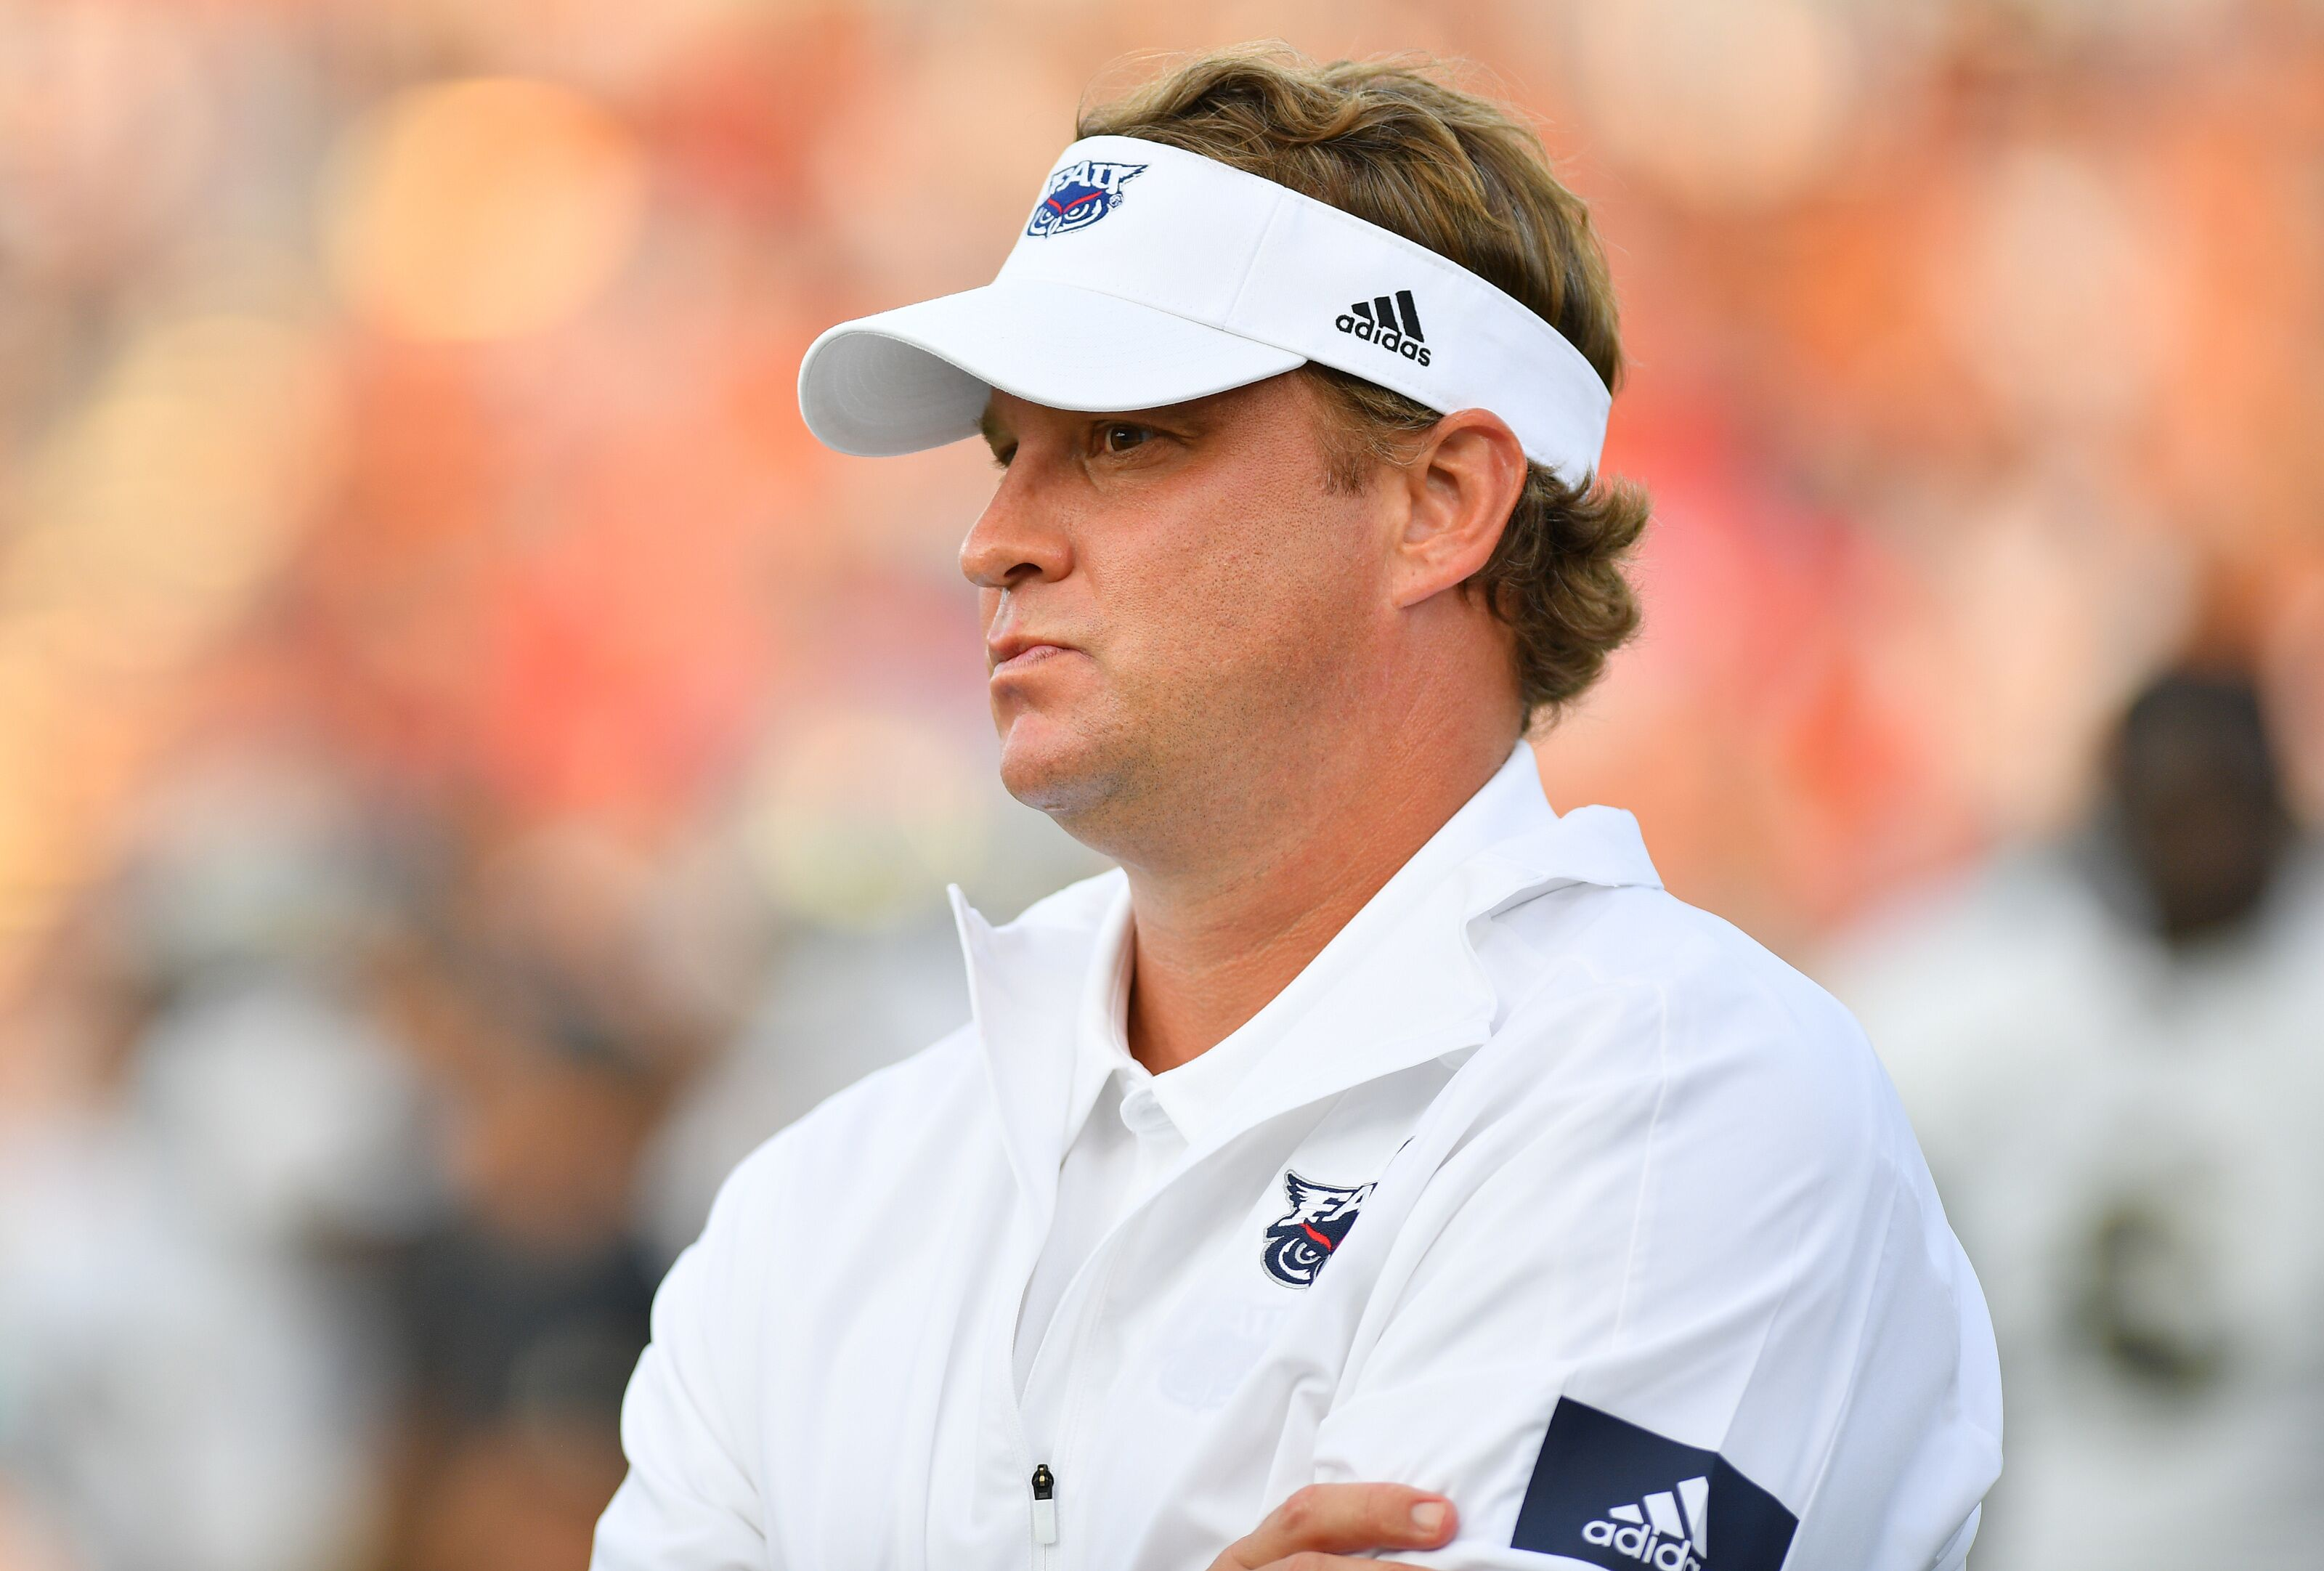 Ole Miss reportedly hopping on Lane Kiffin train: Will it be a success or disaster?